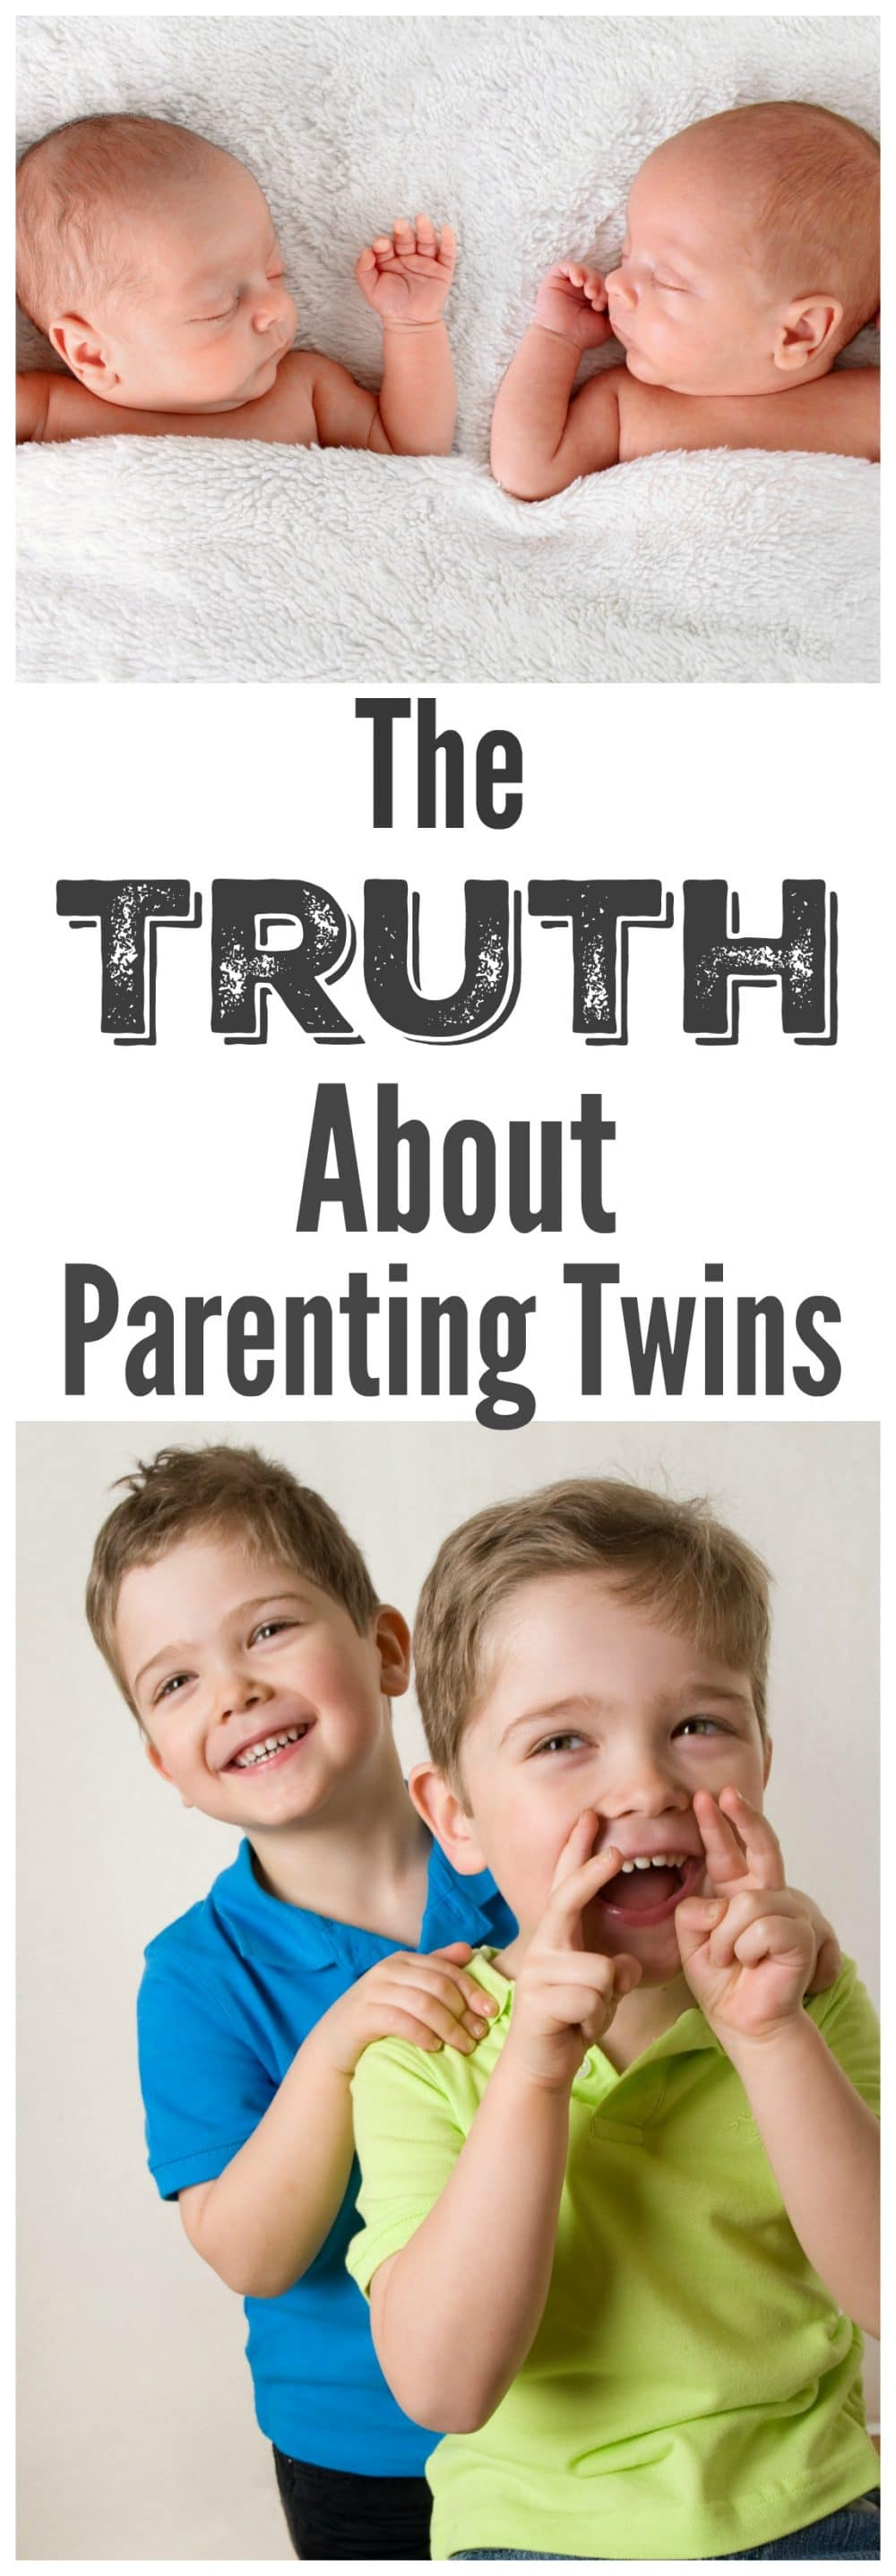 The Truth About Parenting Twins